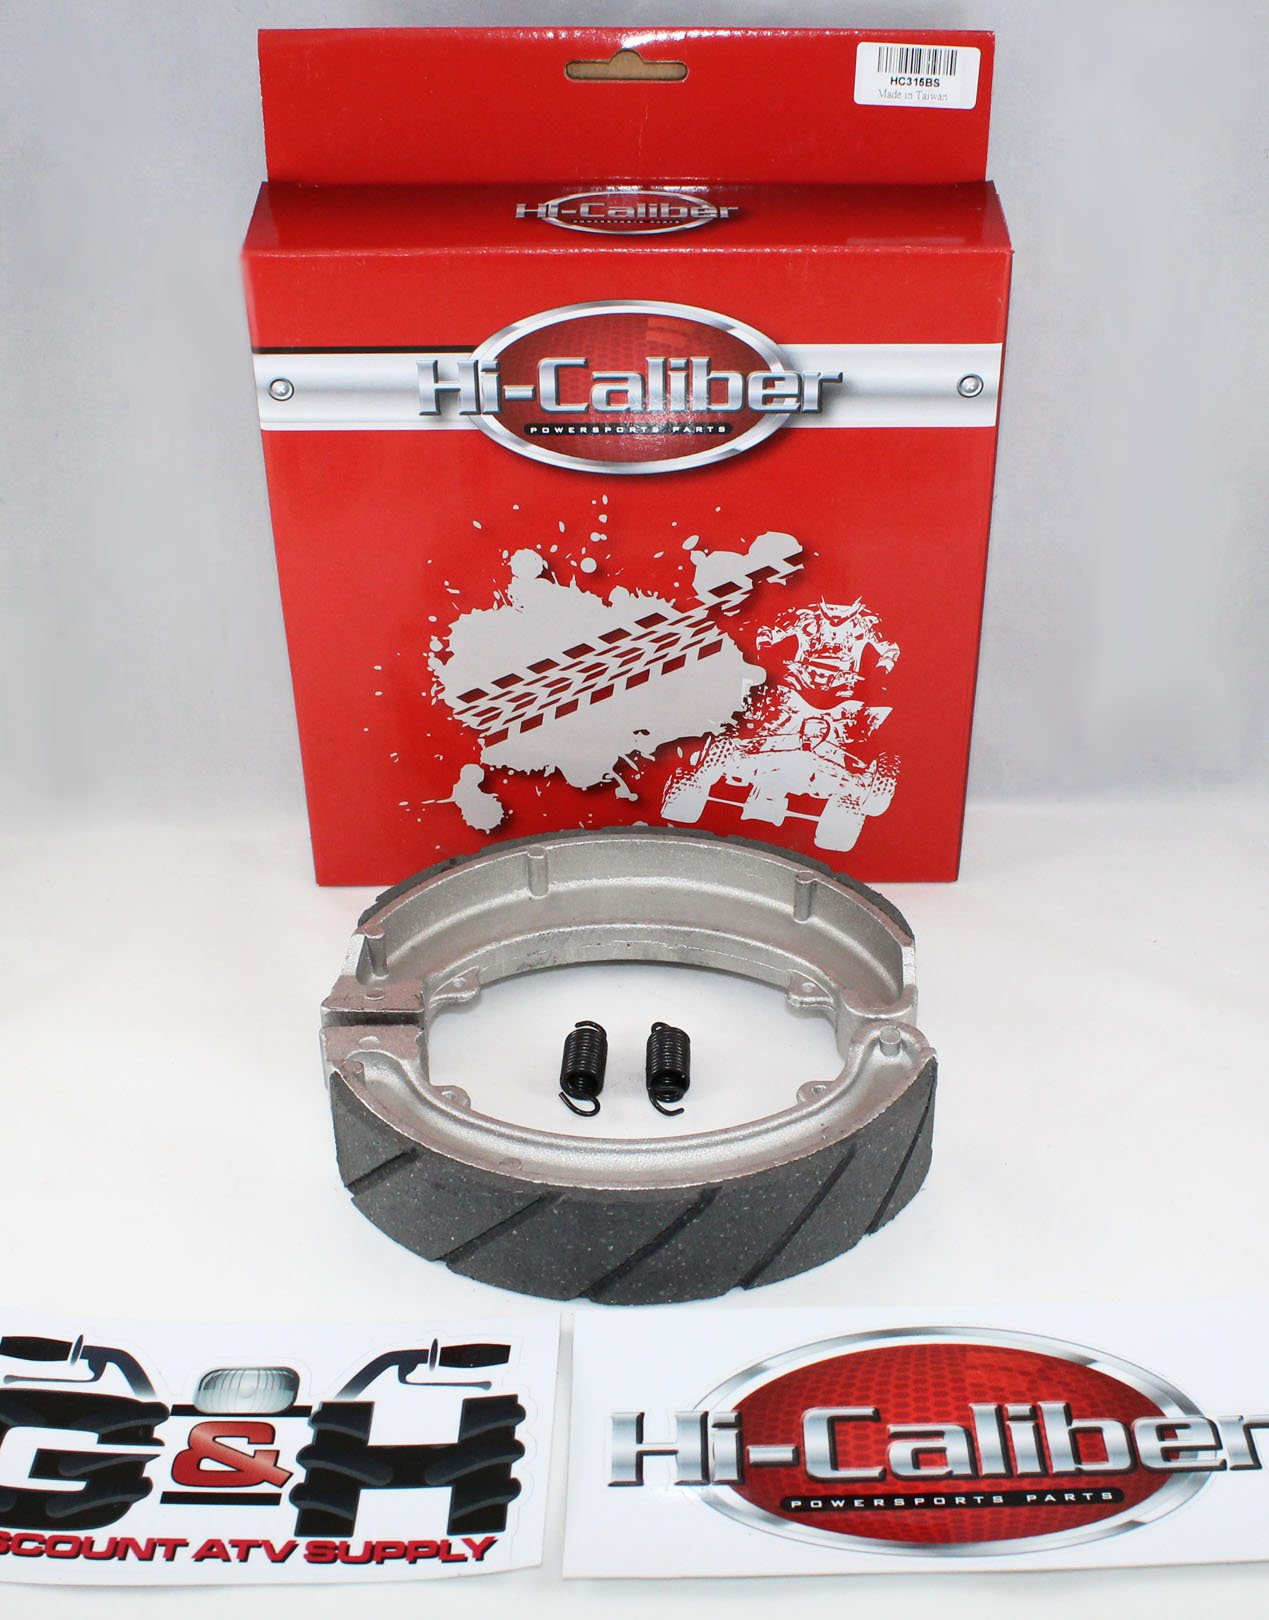 WATER GROOVED REAR BRAKE SHOES & SPRINGS 1988-2000 Honda TRX 300 2x4 4x4 Fourtrax by Hi-Caliber Powersports Parts (Image #2)